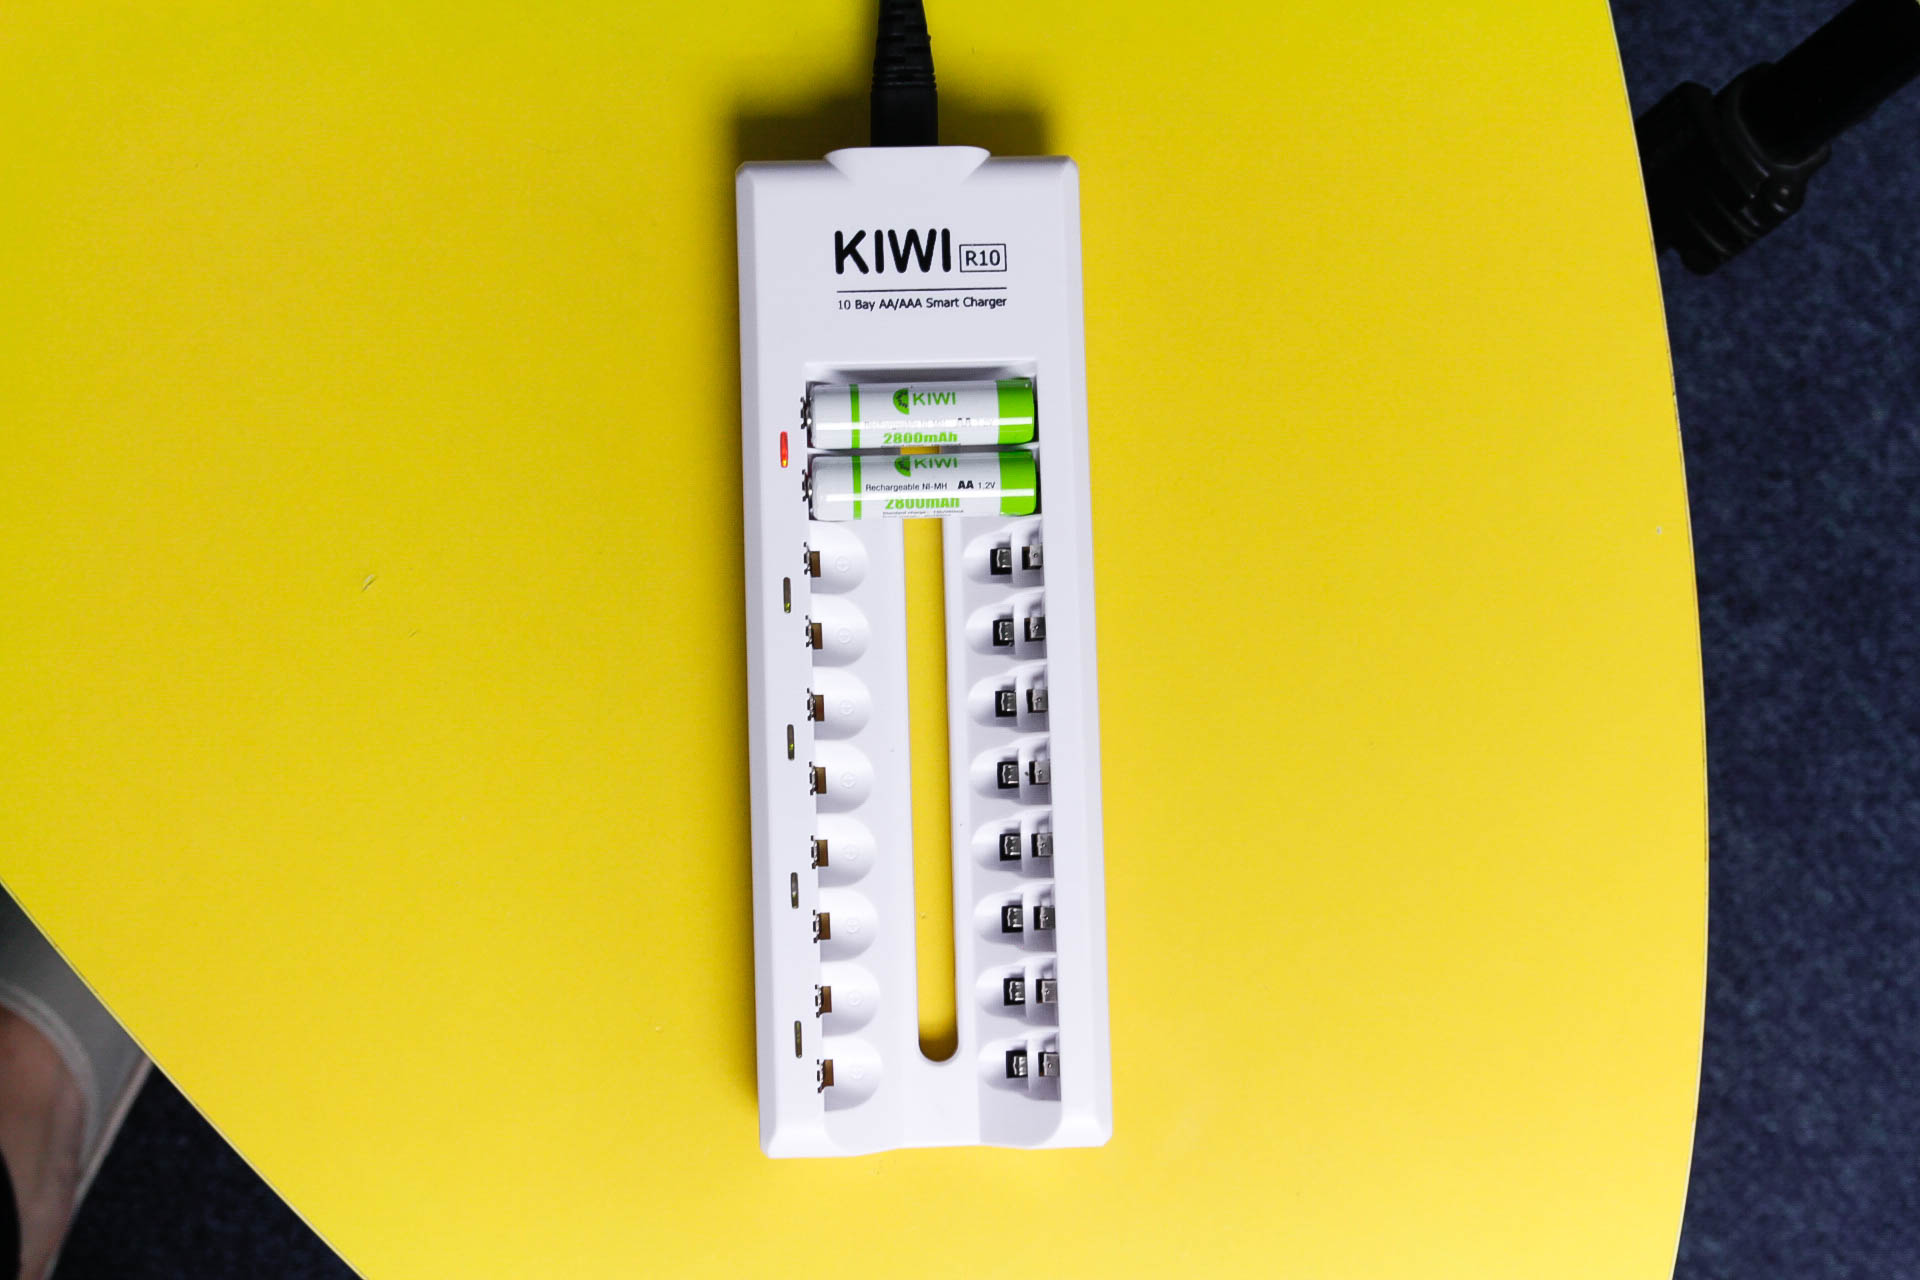 dock-sac-pin-aa-aaa-kiwi-r10 (4)